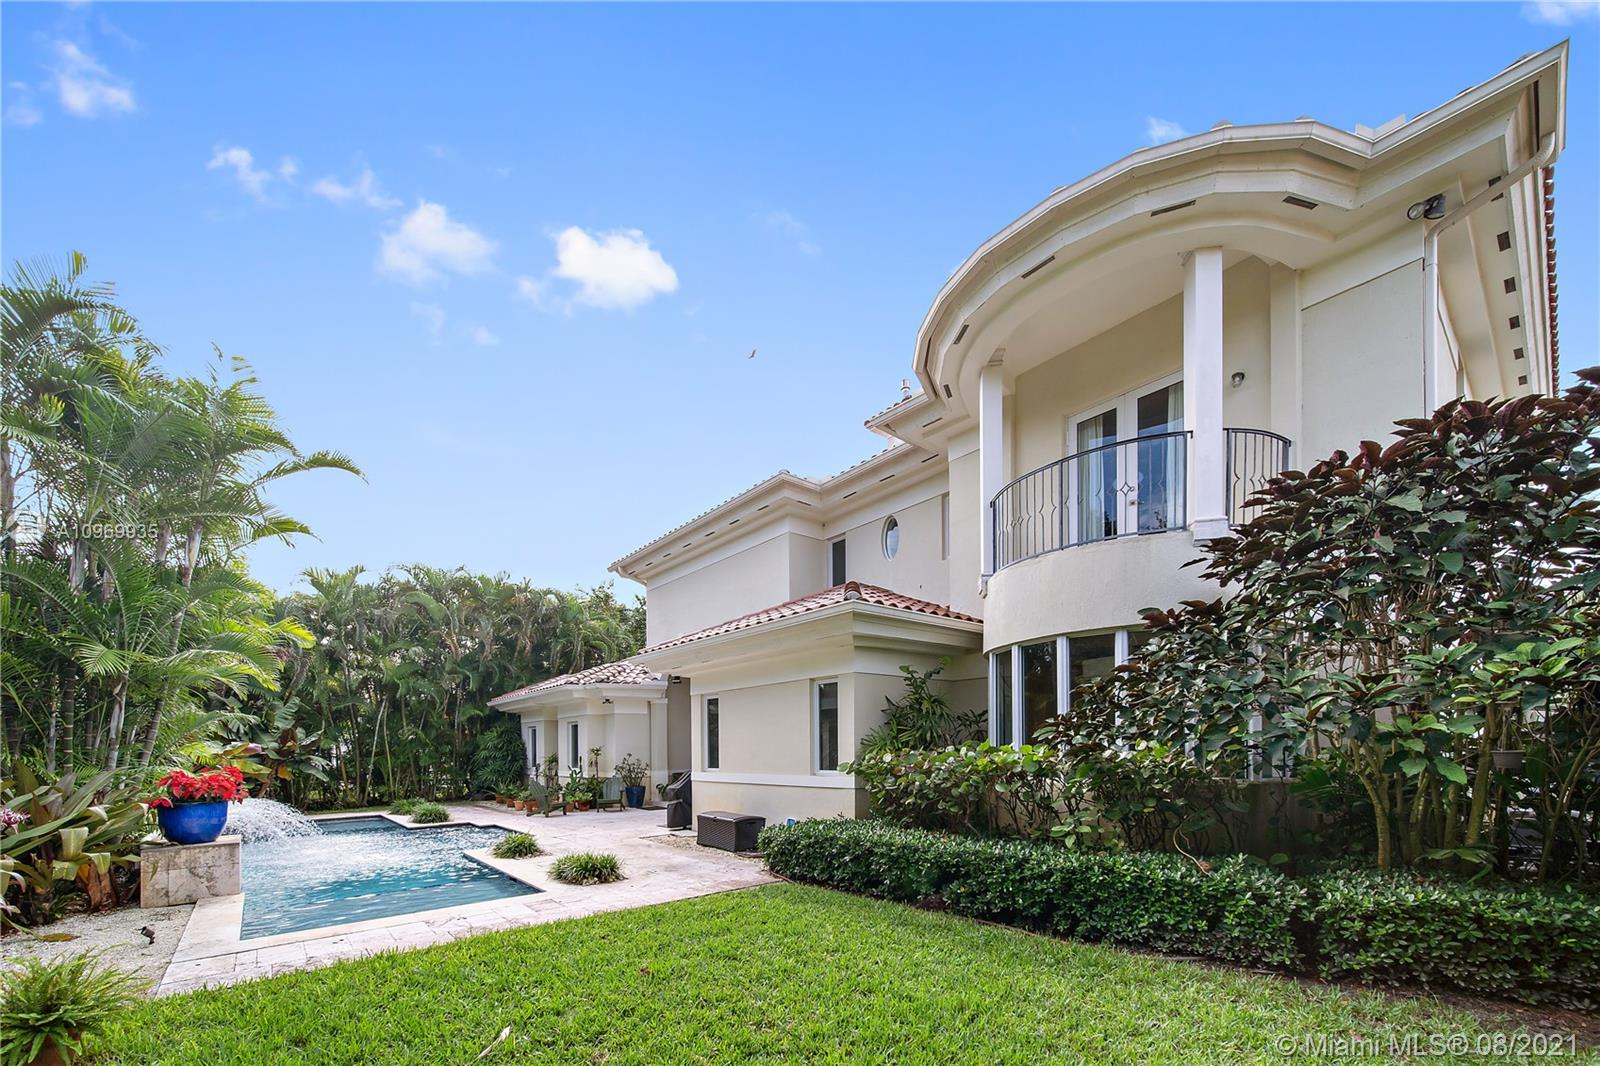 """Exquisite two-story residence on one of the most prestigious streets in Coral Gables.  Elegantly designed and custom-built in 2011 with sophisticated finishes throughout. This 5 beds/6 baths pool home caters to all discerning tastes.  The interior features an extraordinary gourmet kitchen with high end dacor appliances, distinctive walk-in wine cellar, deluxe master suite with spacious sitting room and loft, all bedrooms en-suite, specially commissioned Brazilian wood moldings and artisan handcrafted twisted iron railings, inviting living space with striking details that satisfies all the senses.  You'll love the lush manicured yard complete with paved patio and sparkling pool perfect for entertaining.  Classically styled to be the perfect representation of life in """"The City Beautiful"""""""